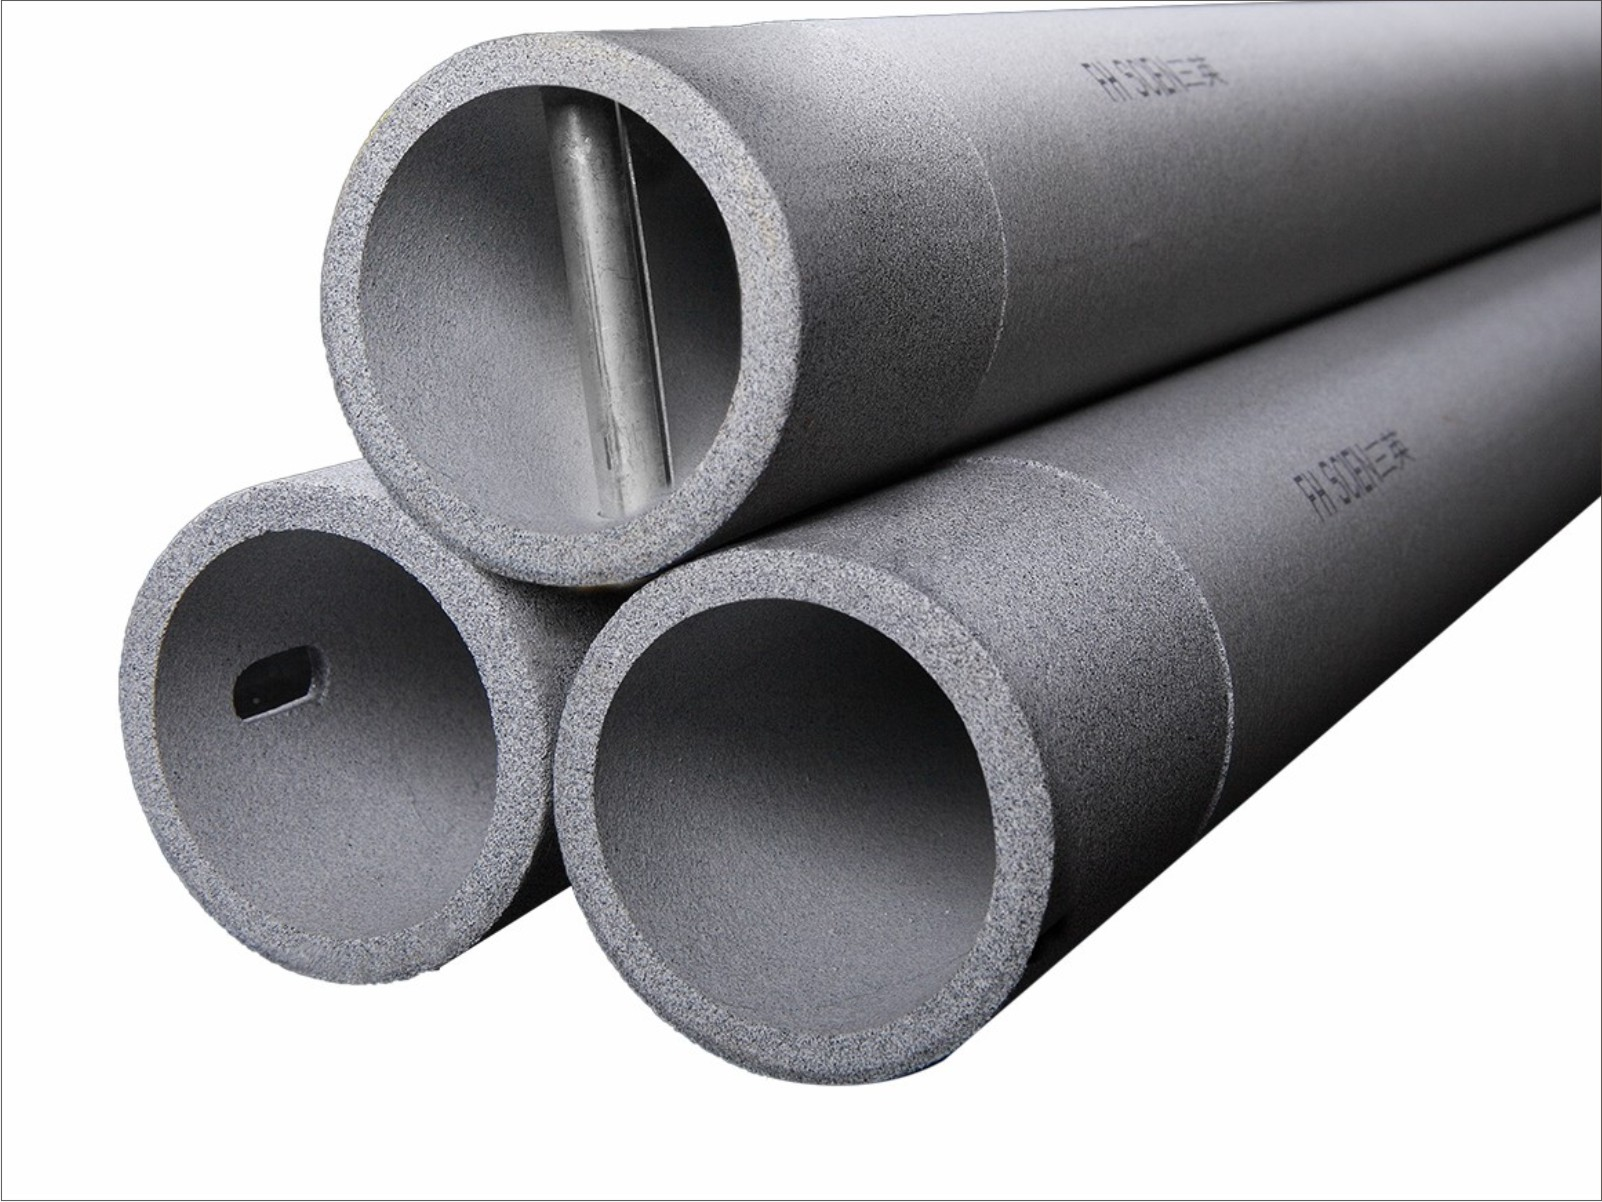 Scien FH93 SiC combined Cordierite cooling roller